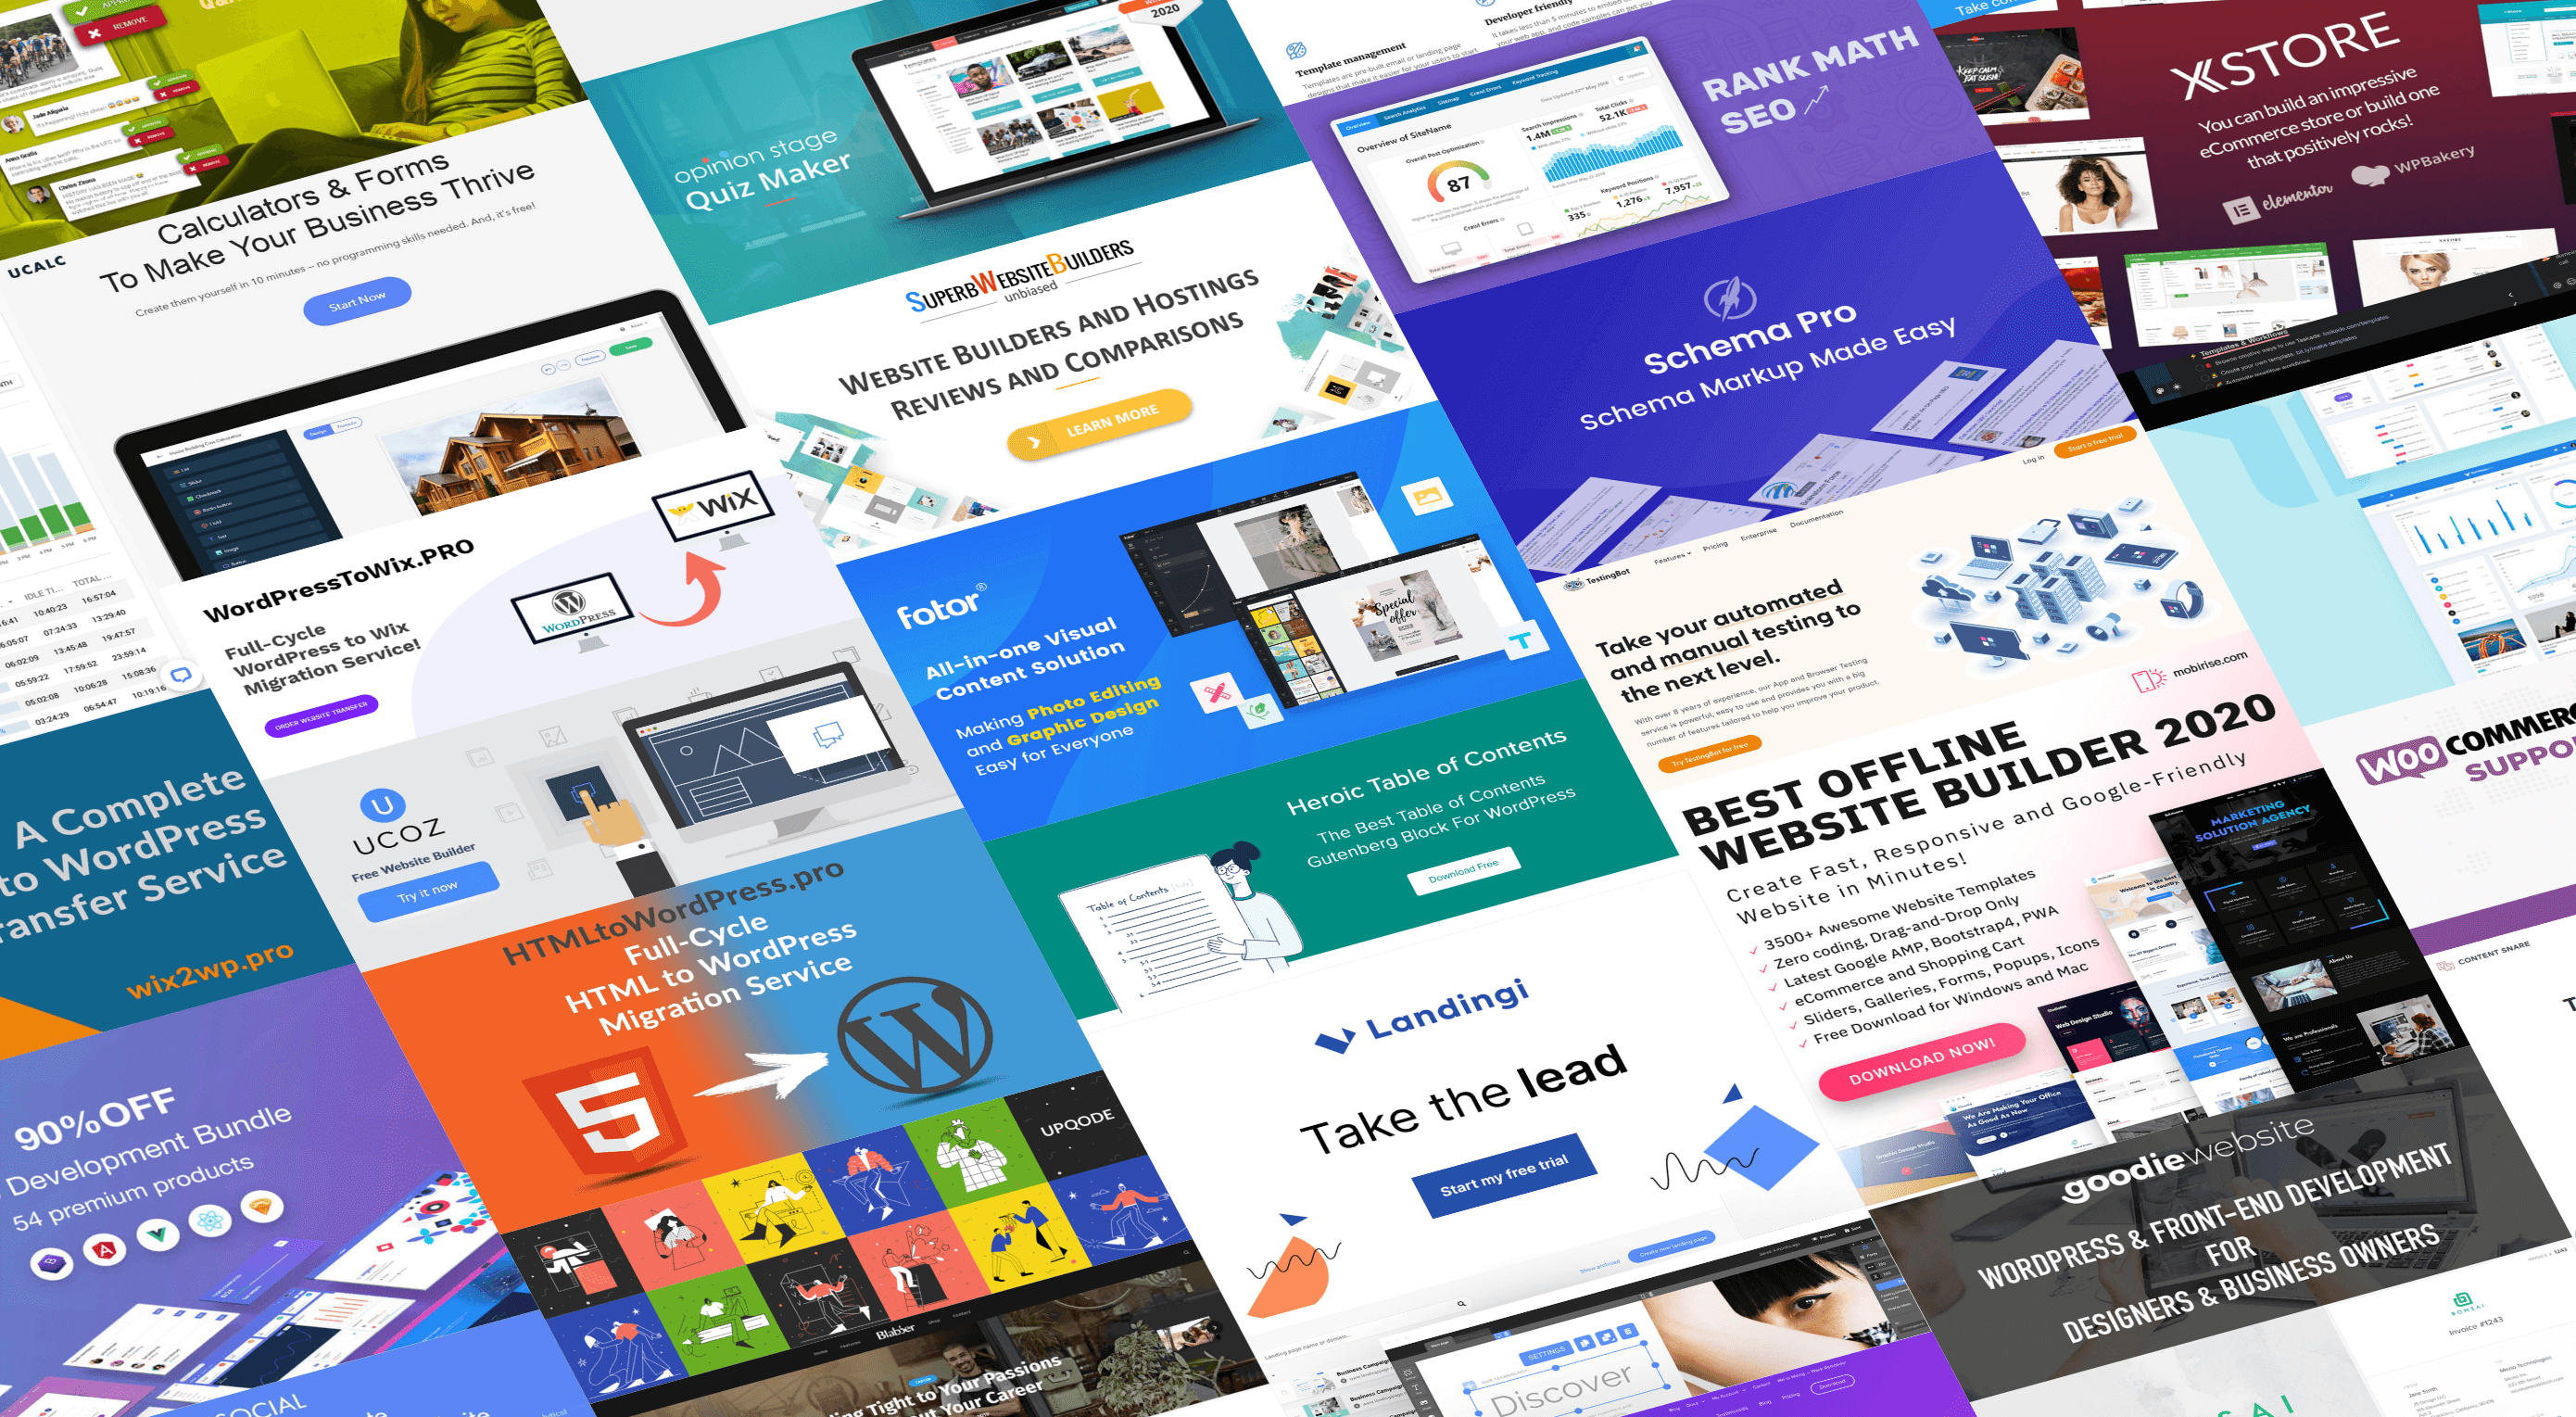 The Most Appreciated Web Solutions of 2020